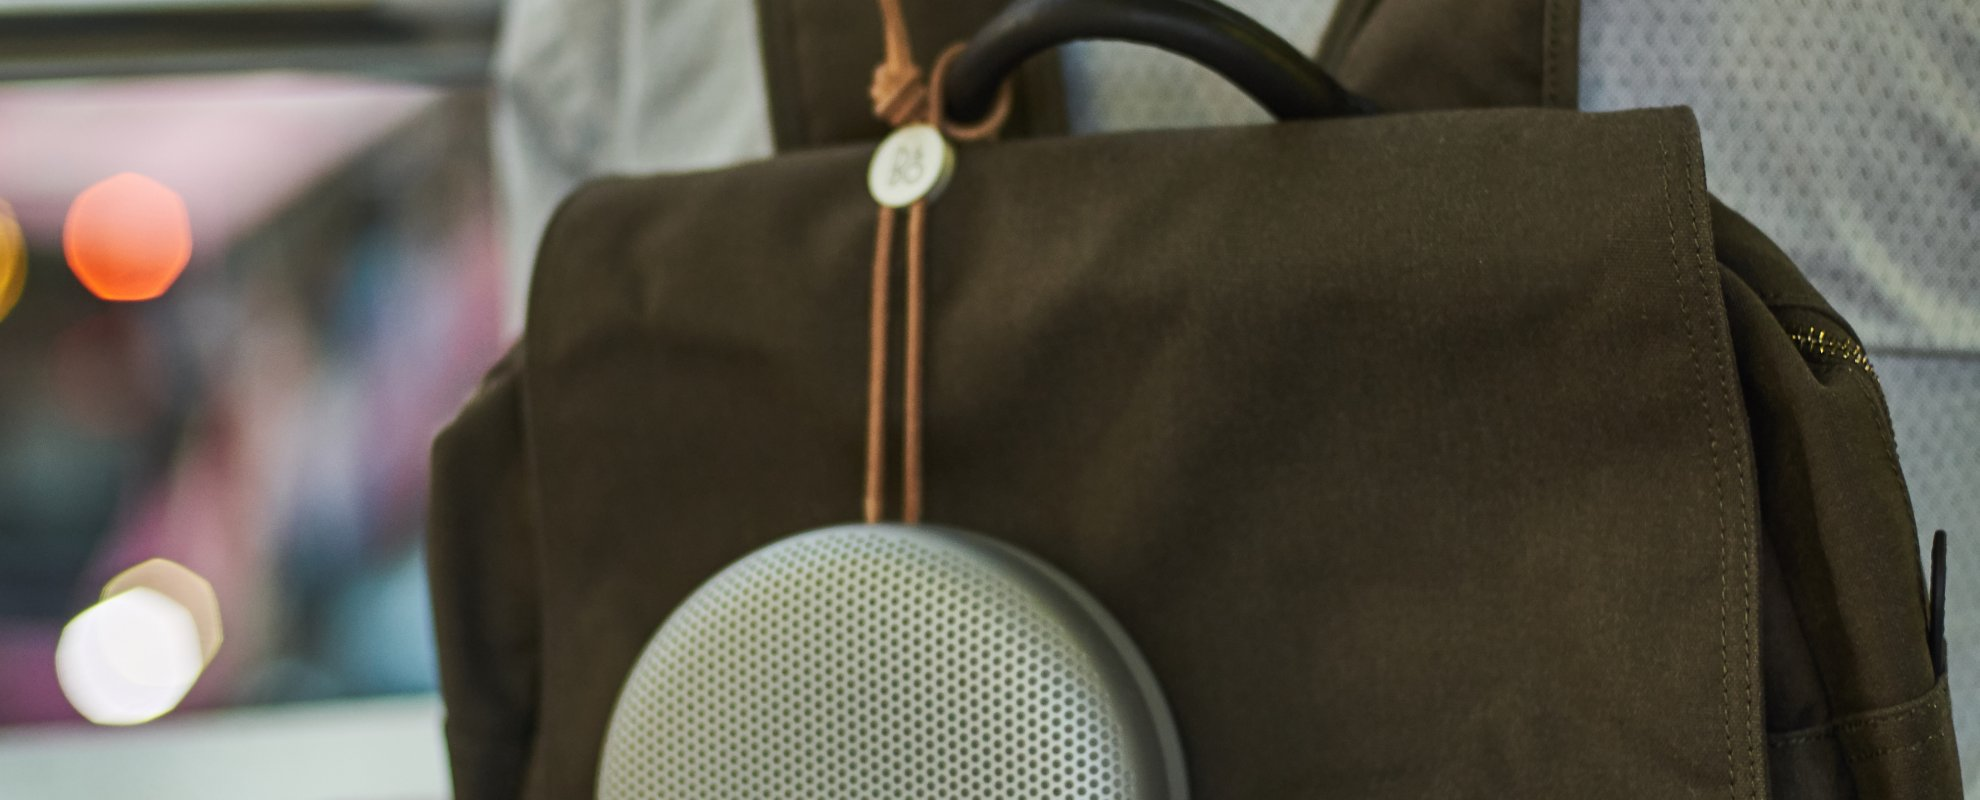 Review Beoplay A1: Traveling Bermodal Hiburan Nada